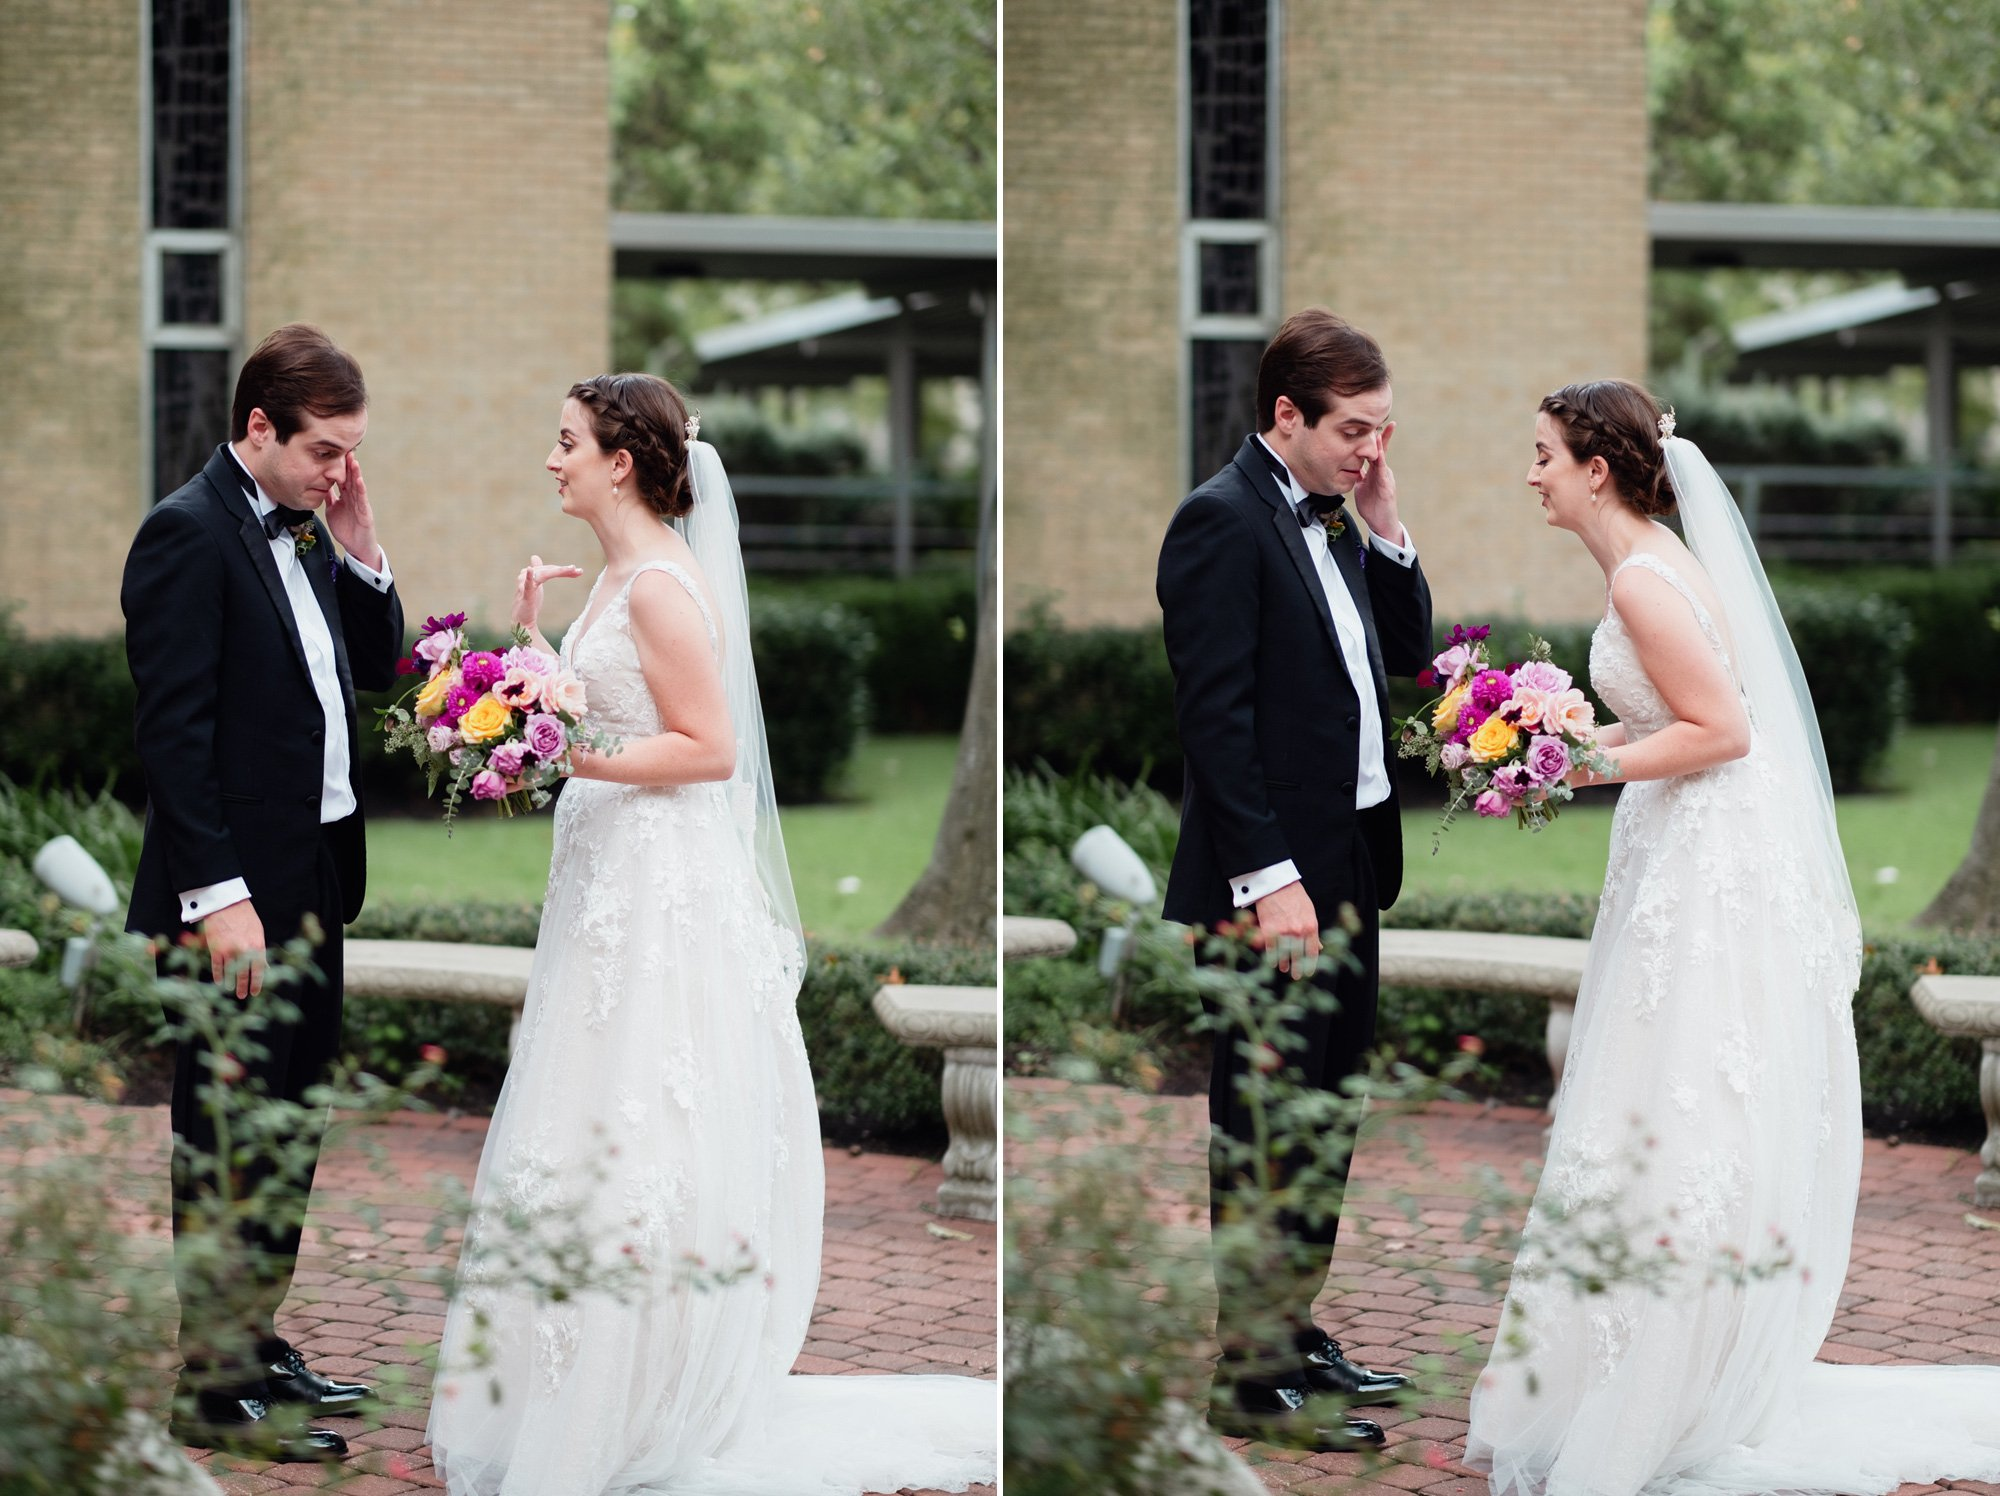 first look photos at an austin wedding, bride and groom tearful reactions during first look at a catholic wedding in austin